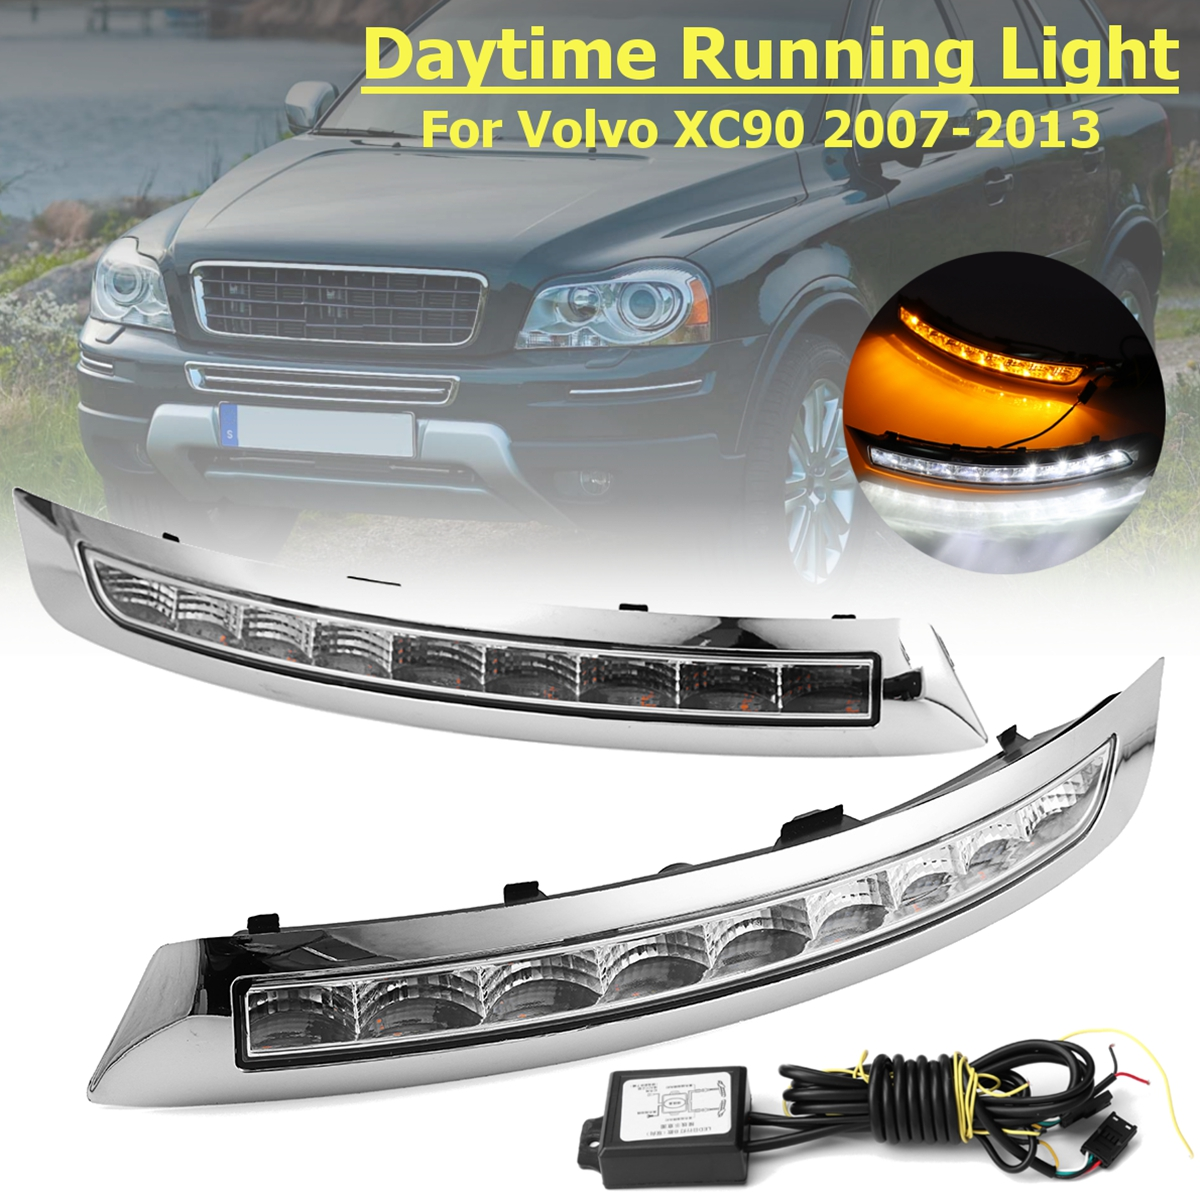 1 Pair LED Turning Signal fog lamp DRL Daytime Running Lights Lamp For Volvo XC90 2007 2008 2009 2010 2011 2012 2013 9 led car styling drl for chevrolet cruze 2009 2010 2011 2012 2013 daytime running lights with turning signal free shipping